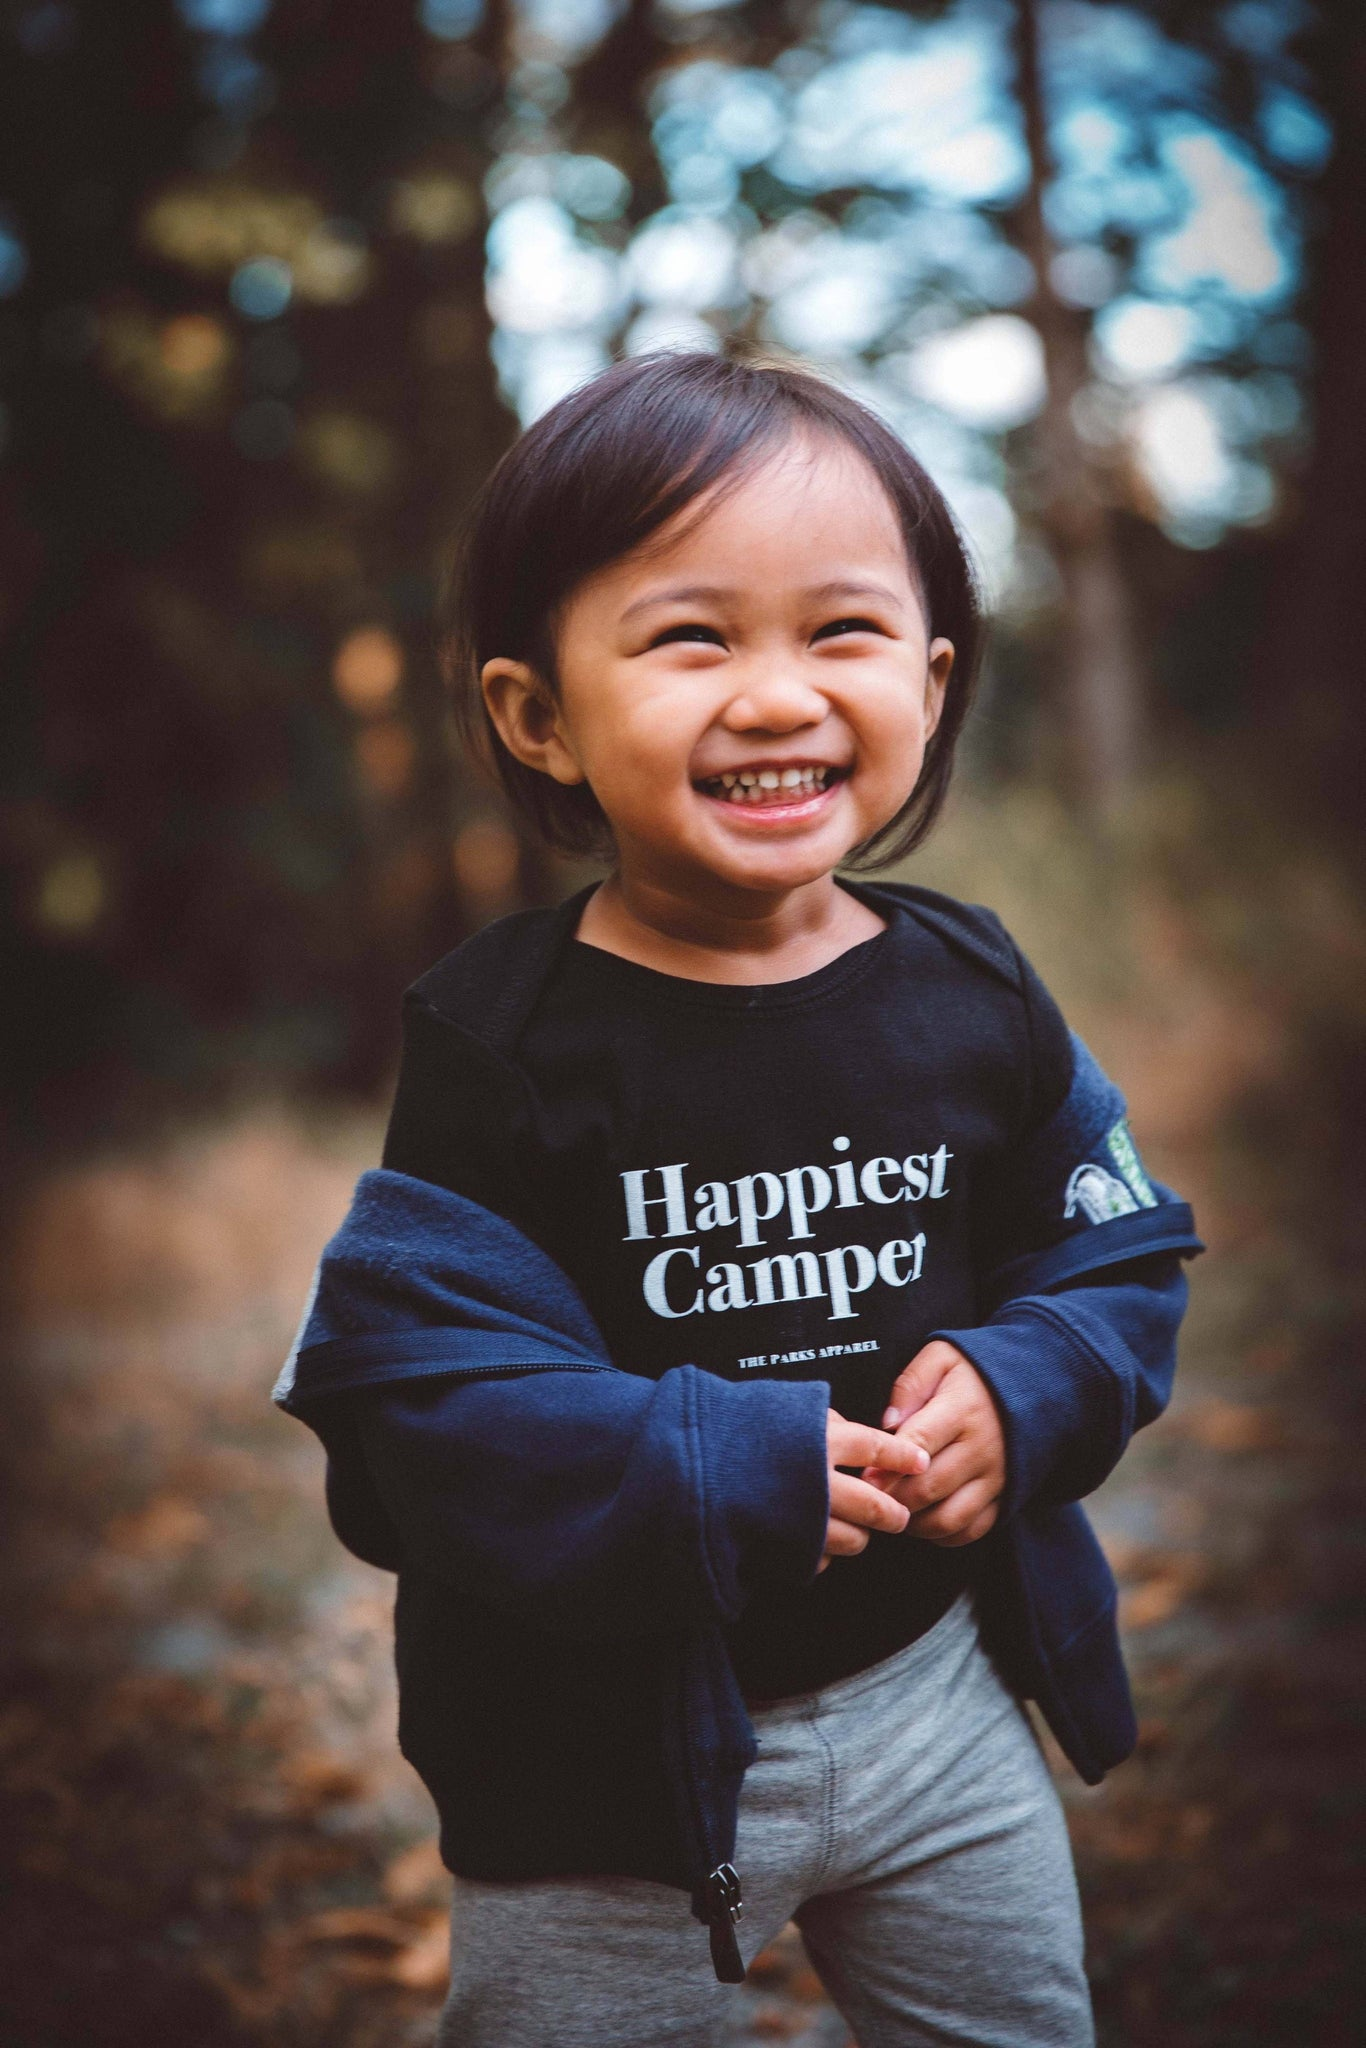 The Parks Happiest Camper Onesie - The Parks Apparel